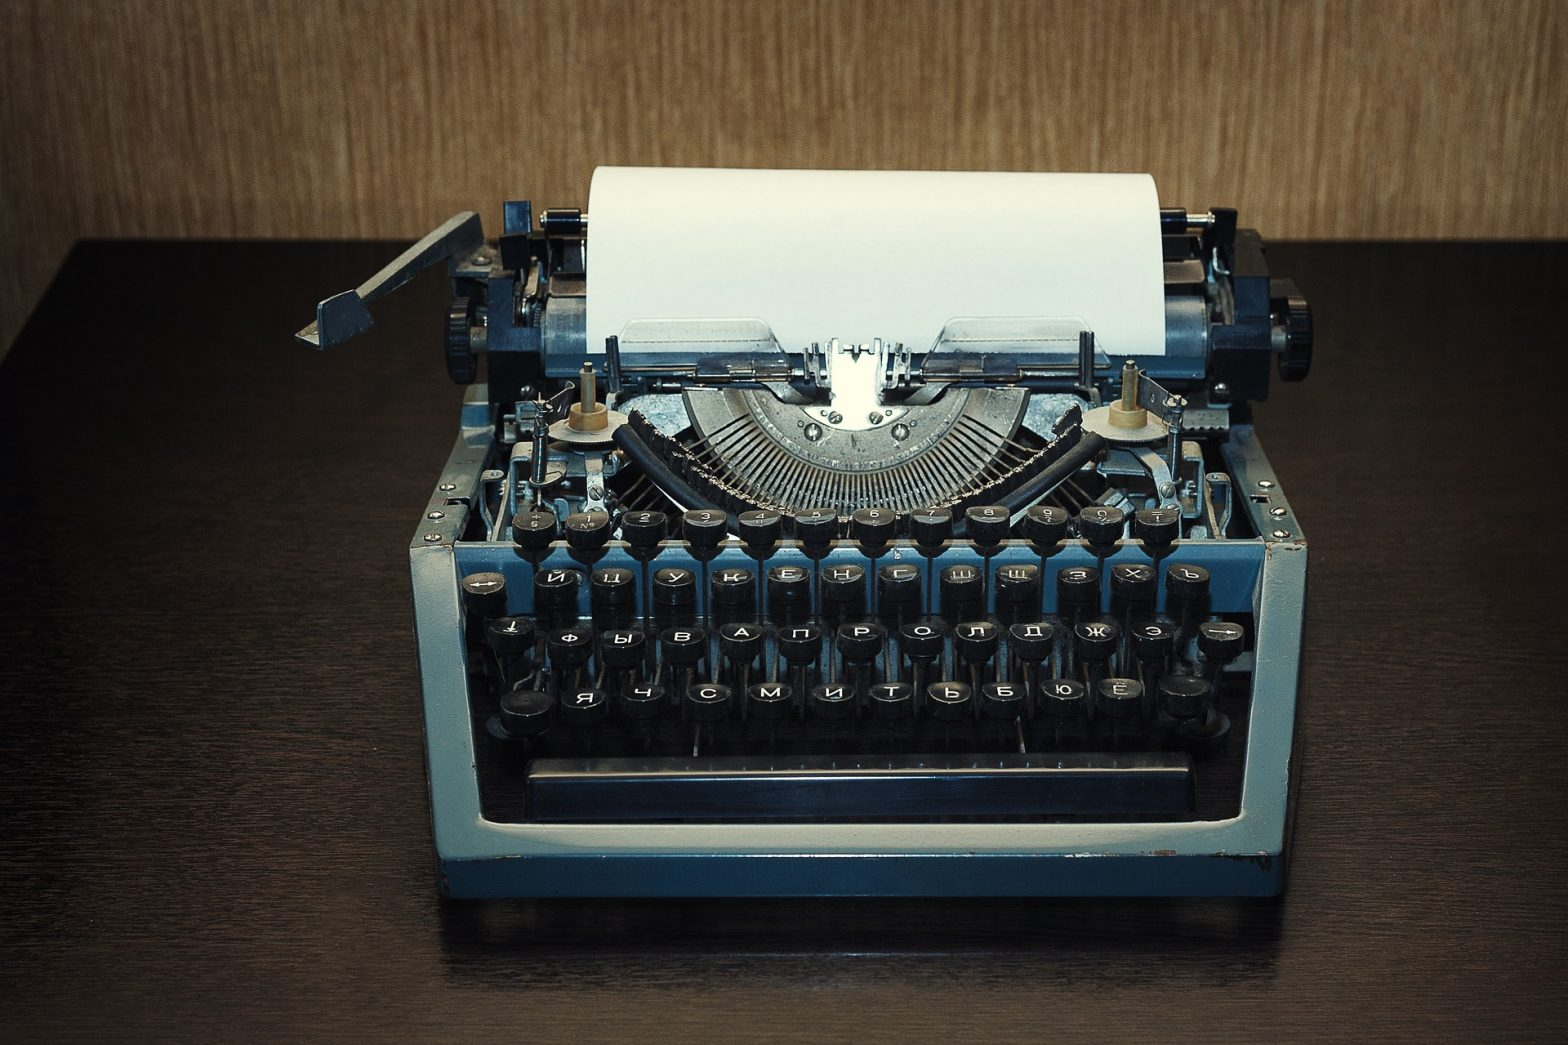 Might be time to upgrade the typewriter!